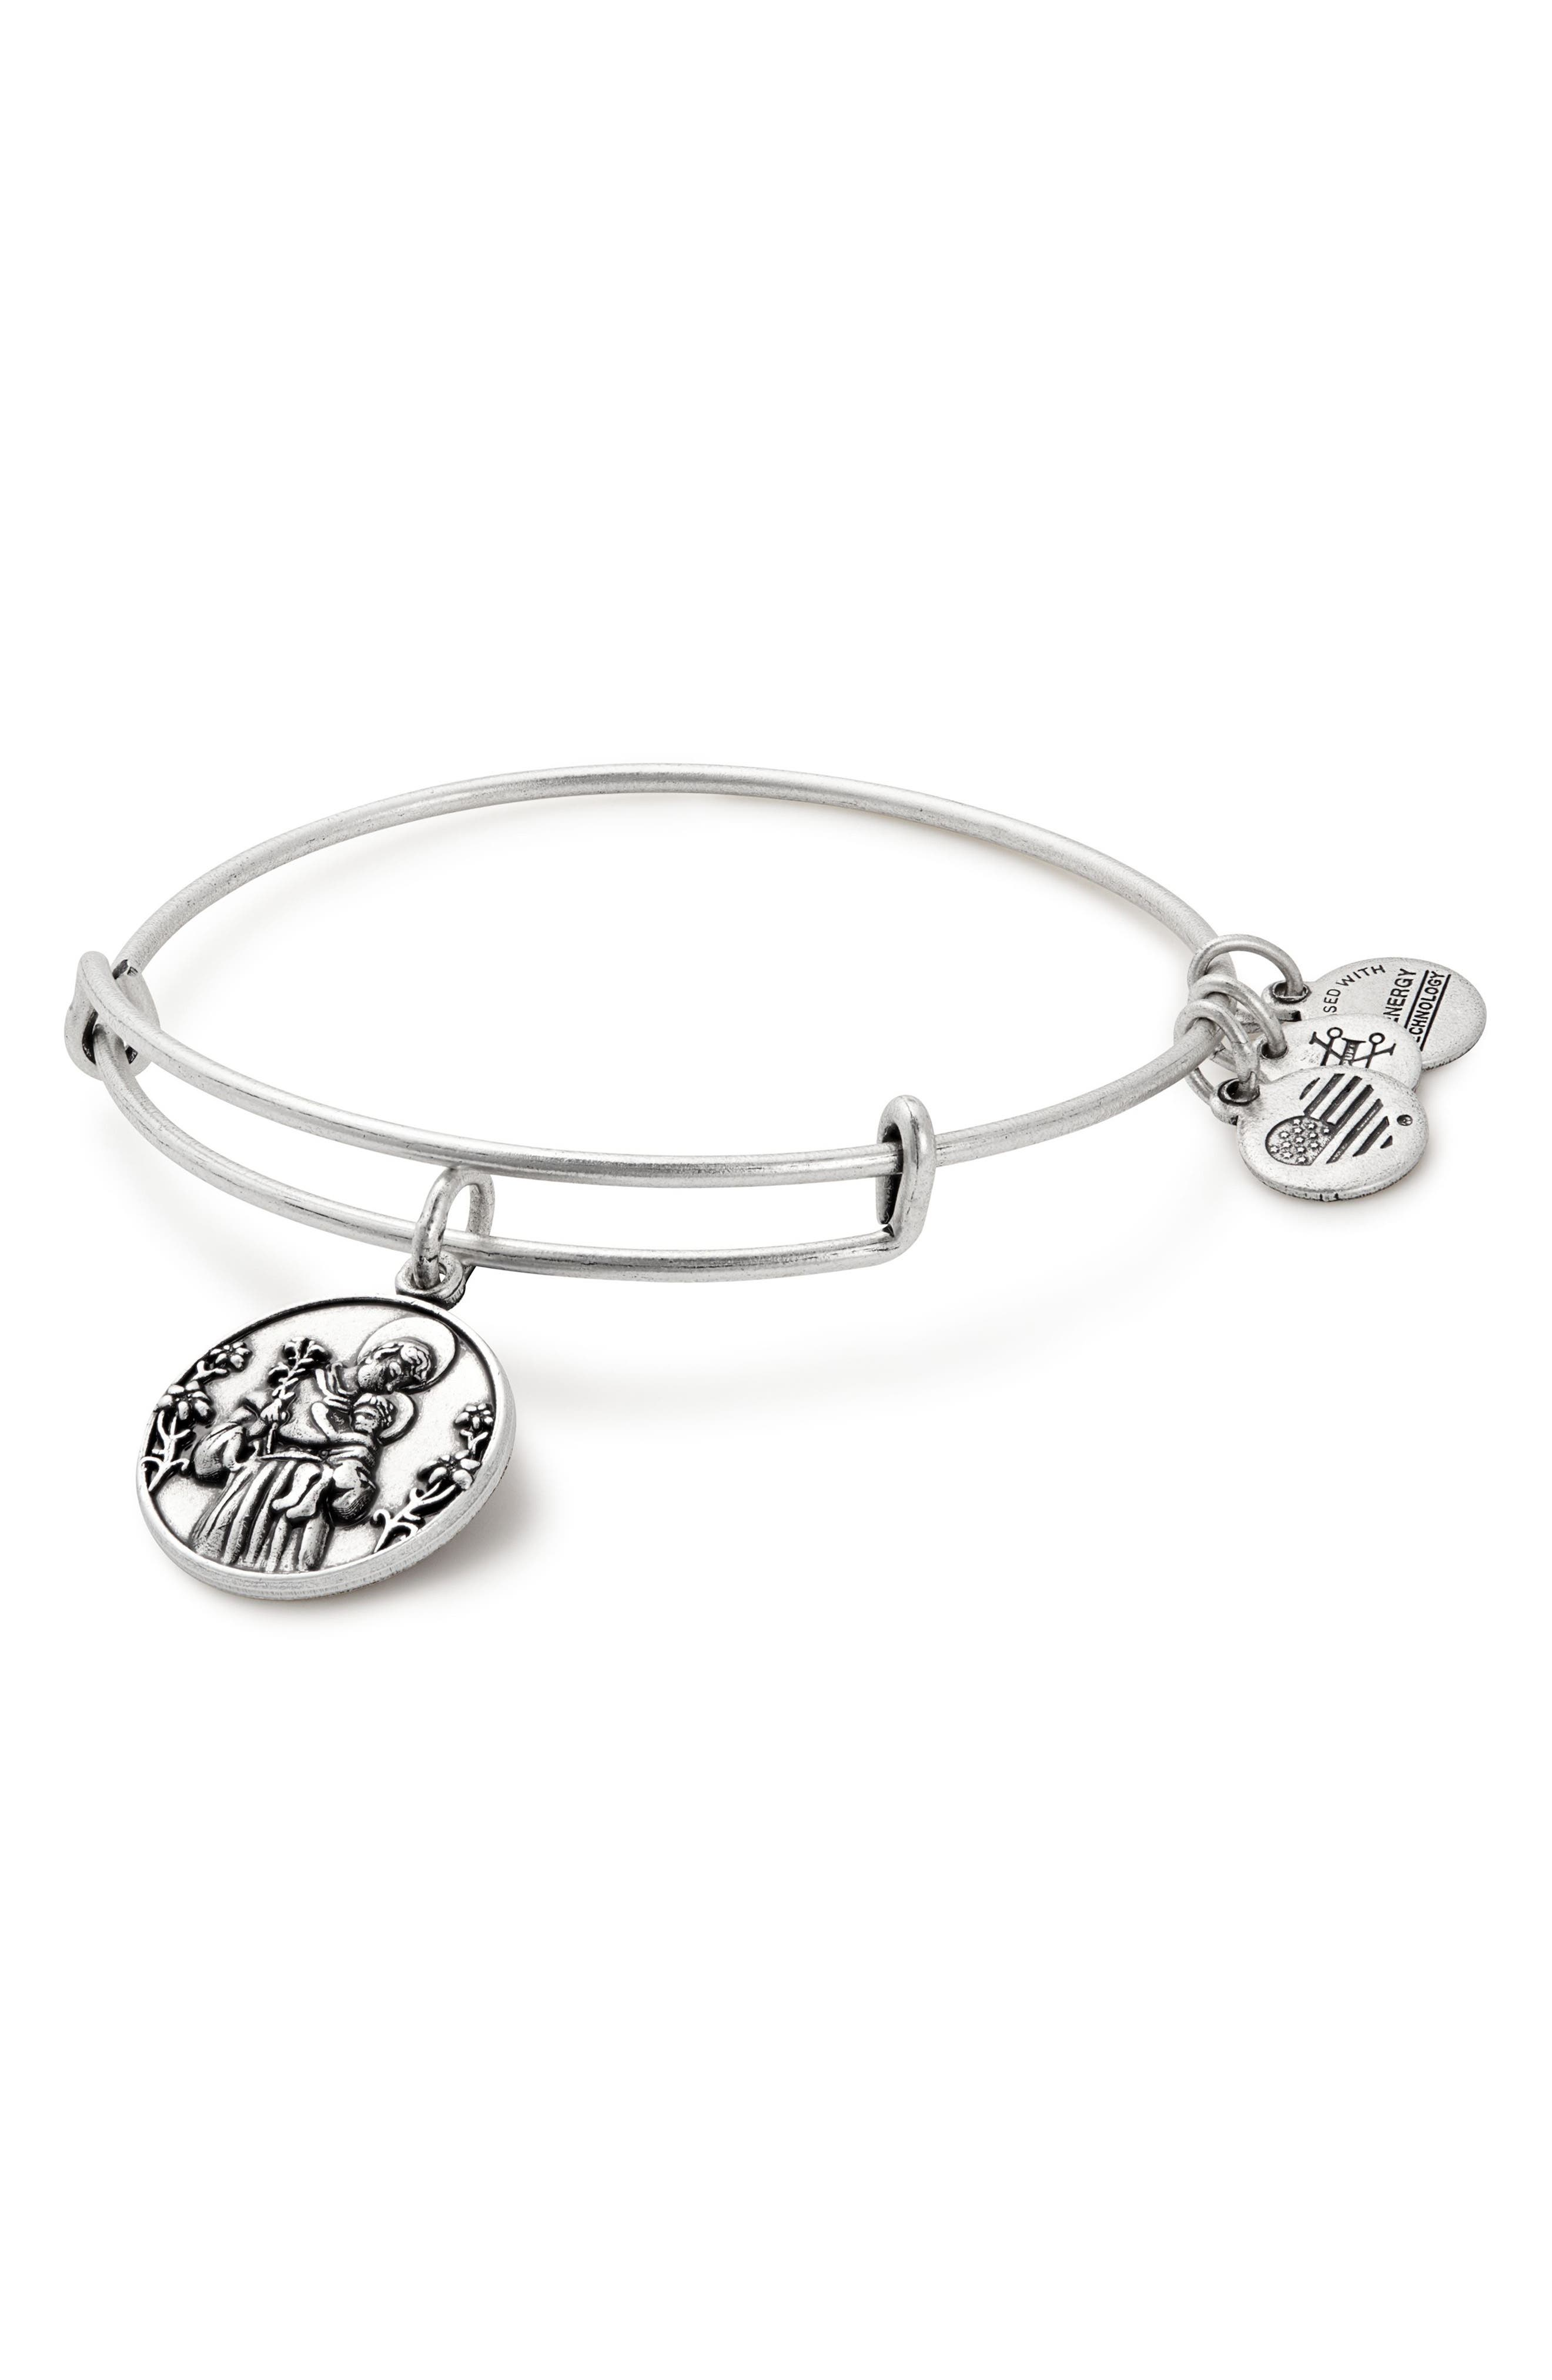 Main Image - Alex and Ani St. Anthony Adjustable Wire Bangle